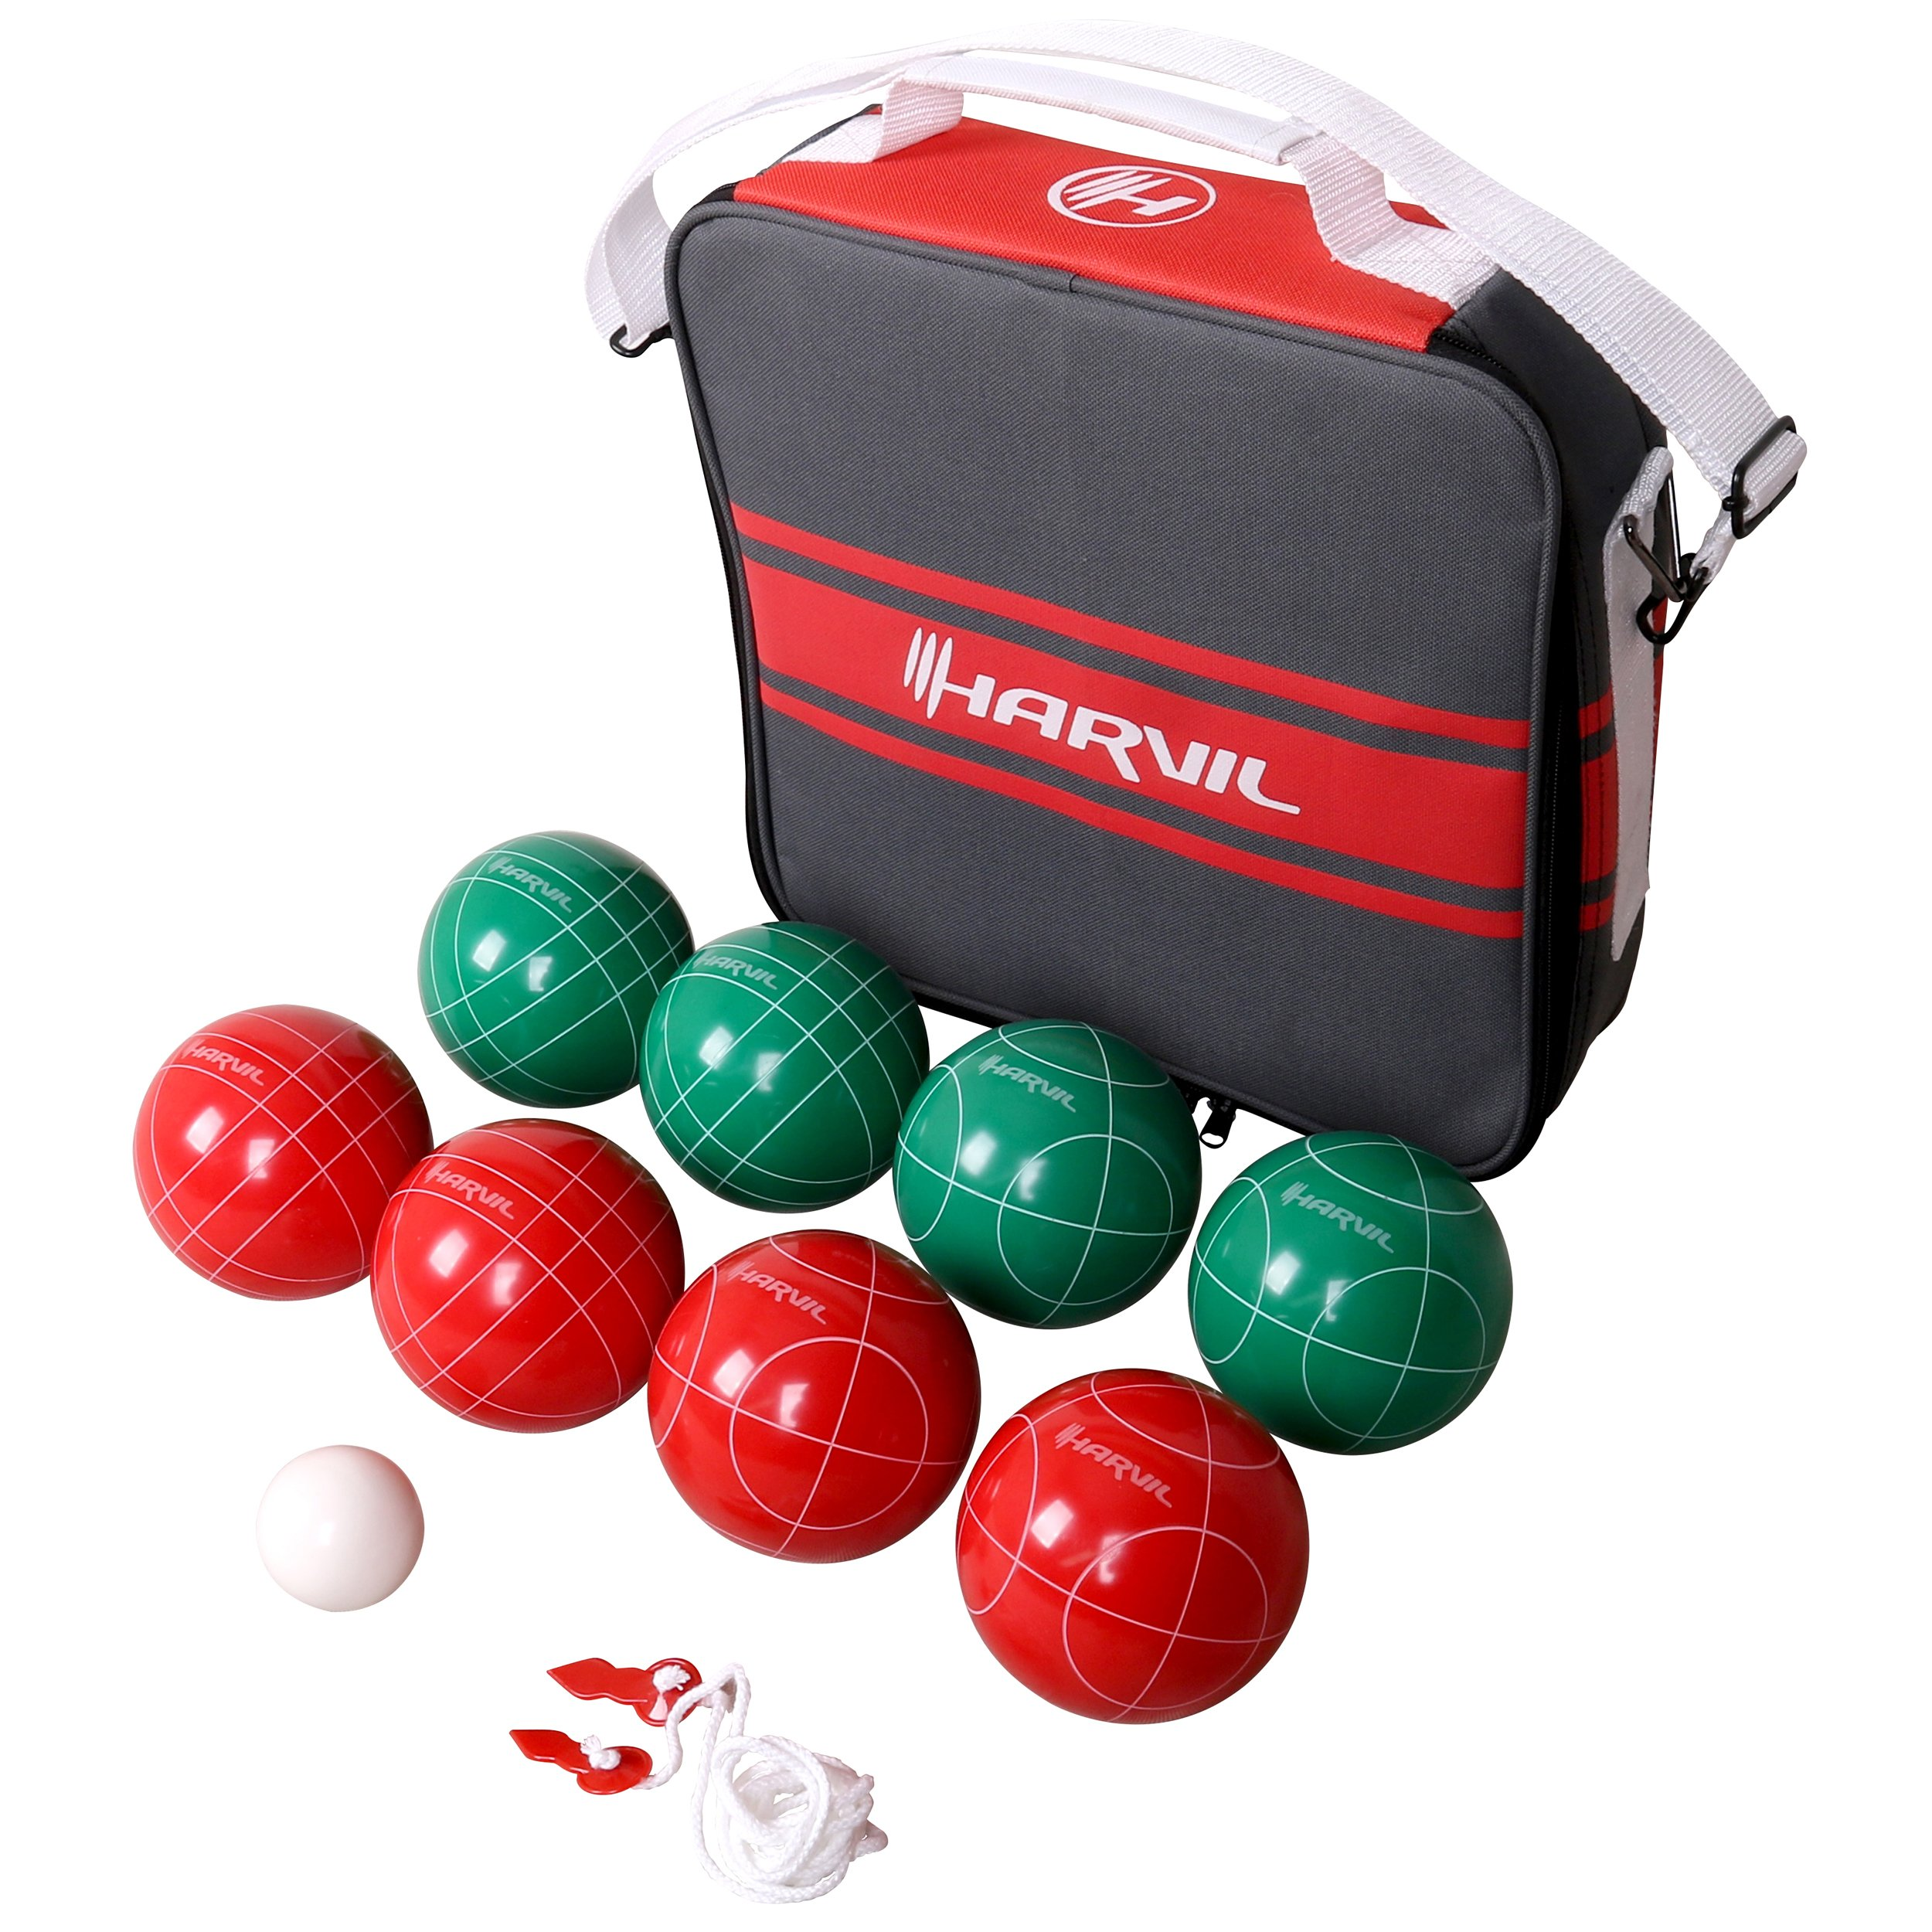 Harvil 100mm Bocce Ball Set. Includes 8 Poly-Resin Balls, 1 Pallino, 1 Nylon Zip-Up Carrying Case and Measuring Rope. by Harvil